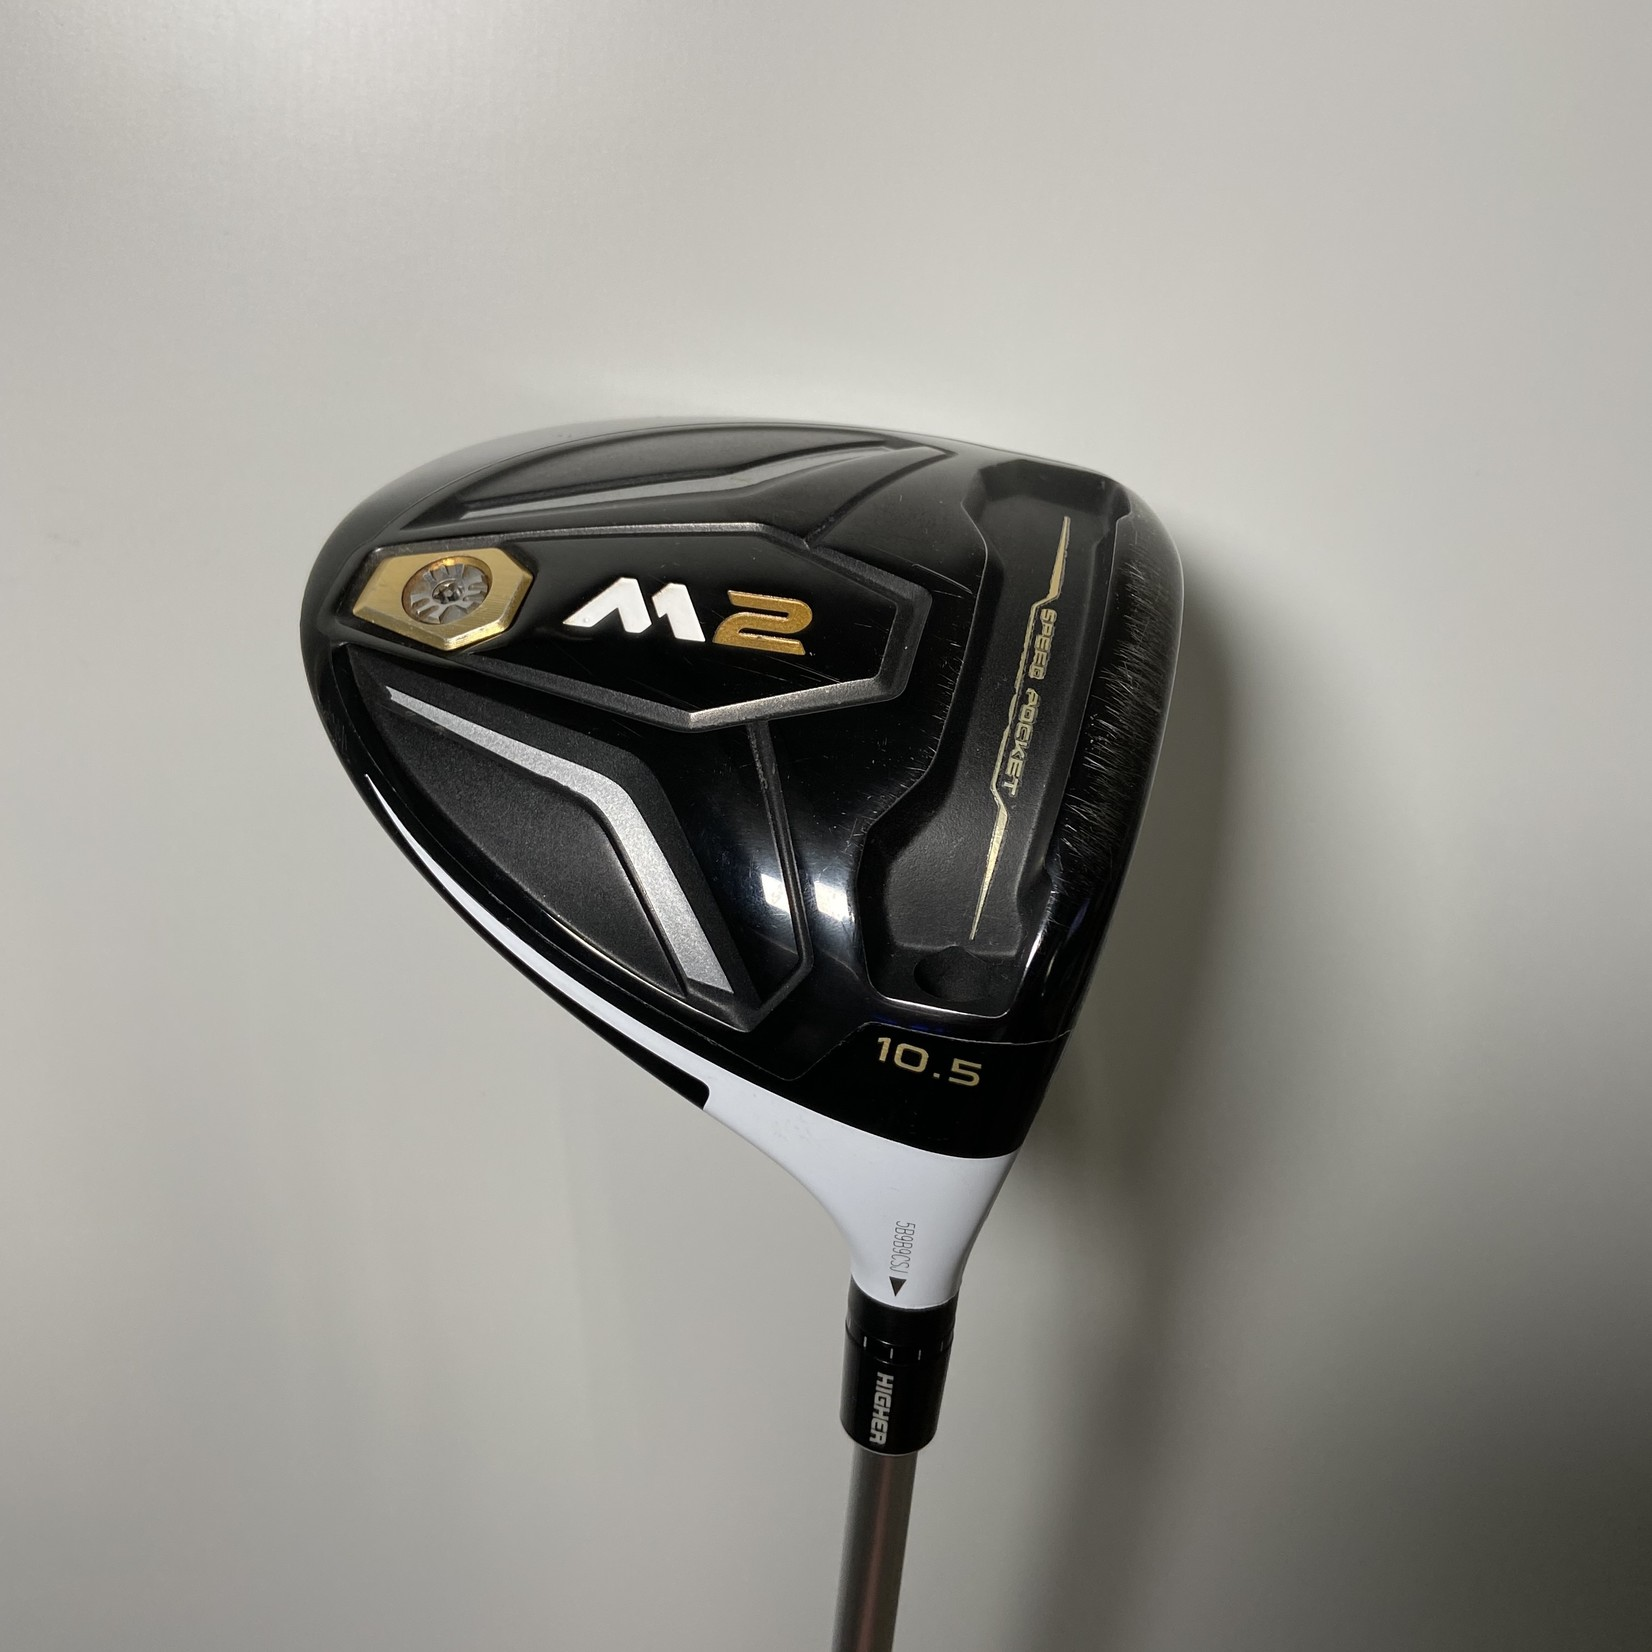 TaylorMade Used Ladies Taylormade M2 Driver RH